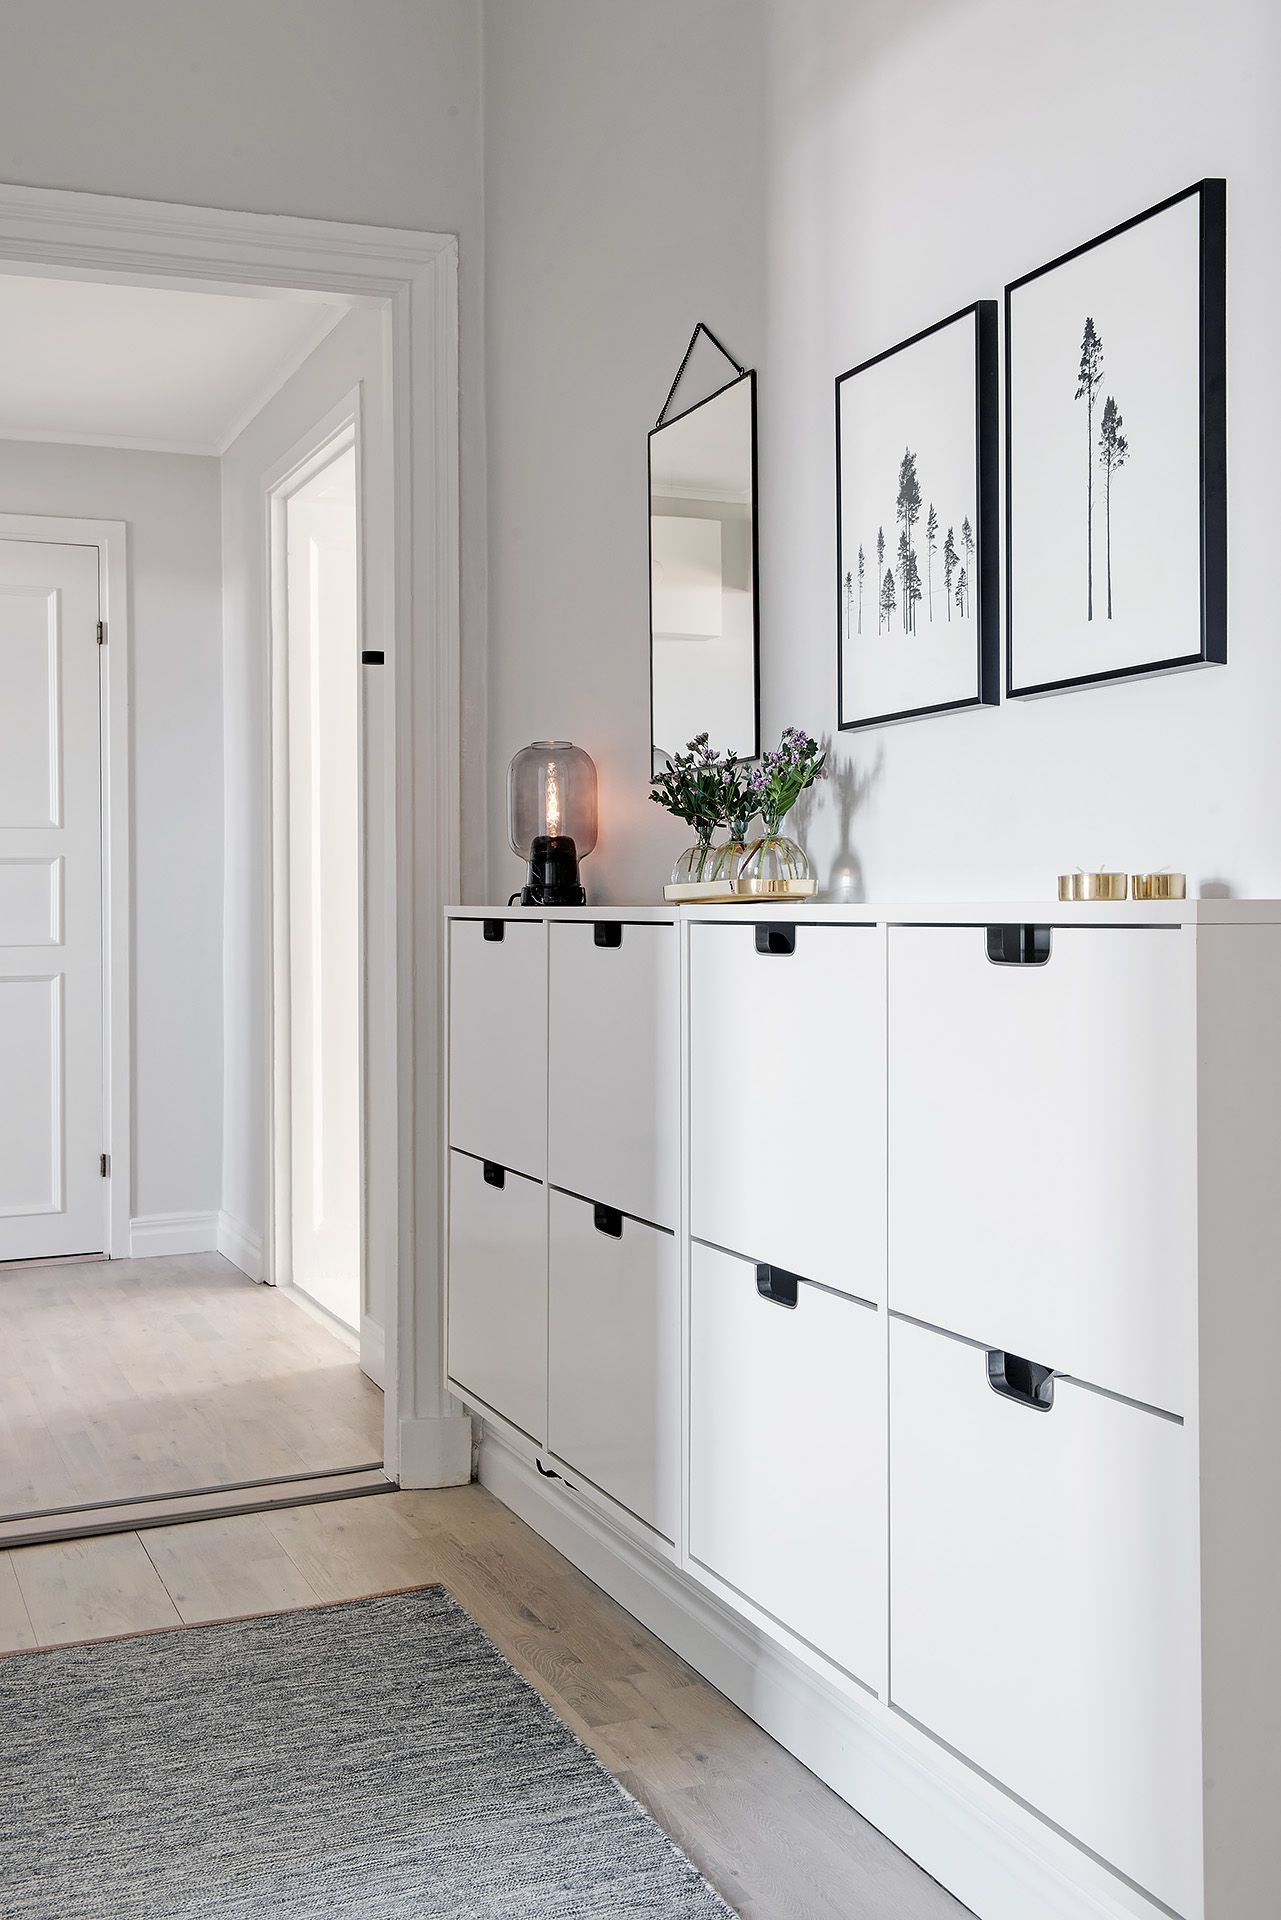 ikea st ll shoe cabinet hall en 2018 pinterest decor shoe cabinet et ikea. Black Bedroom Furniture Sets. Home Design Ideas